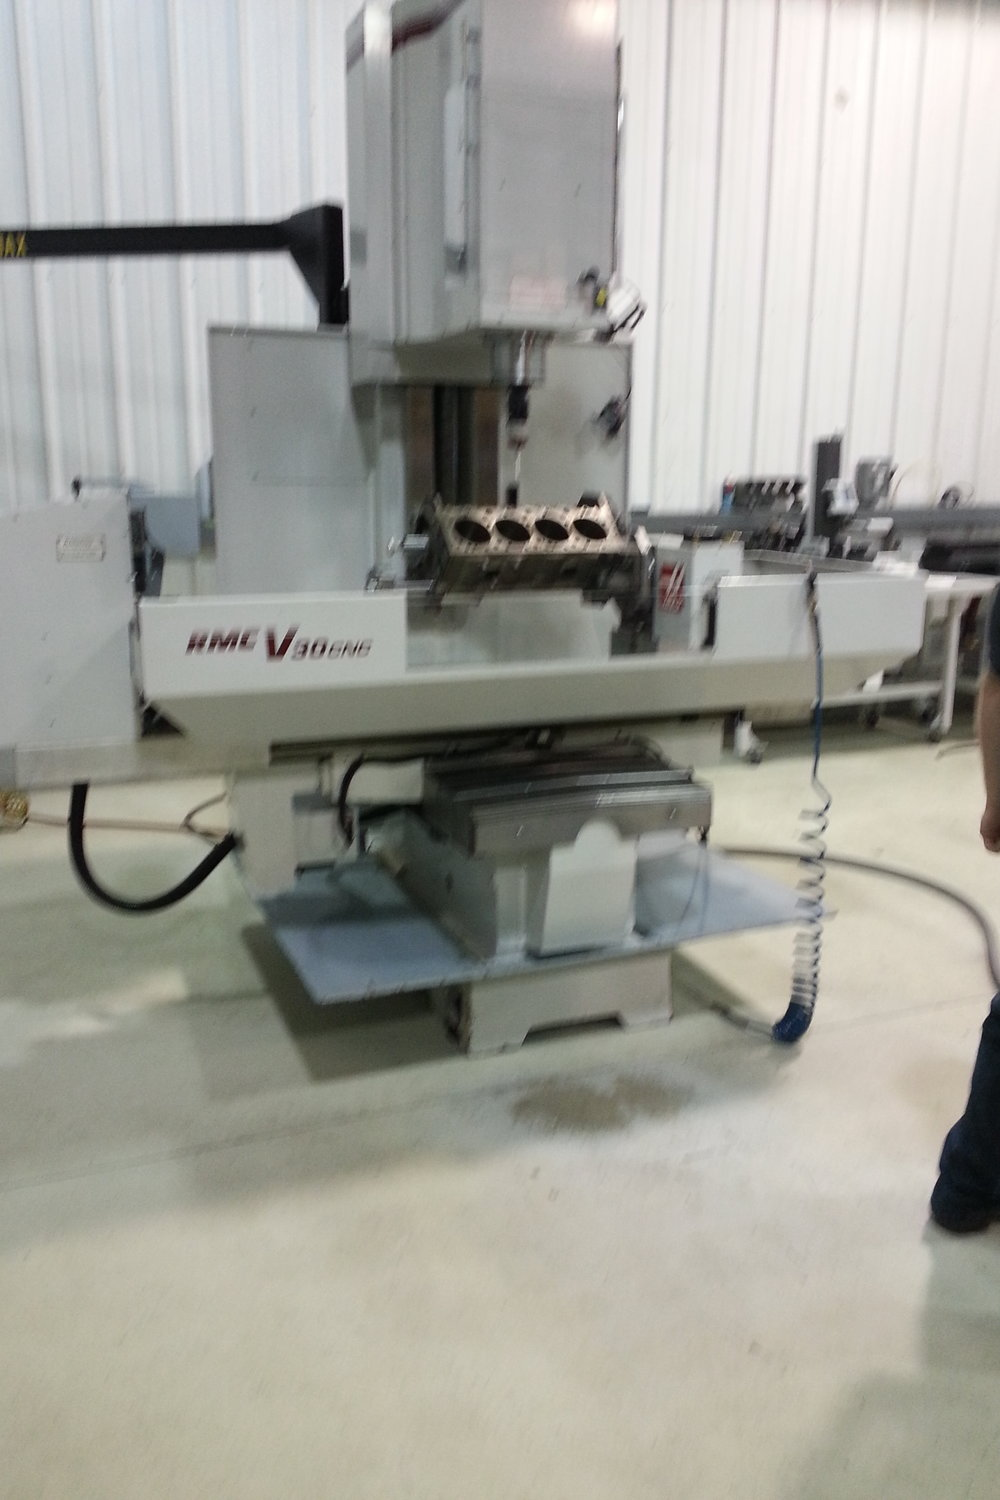 Photo of the machine in the Michigan facility where they went to train.